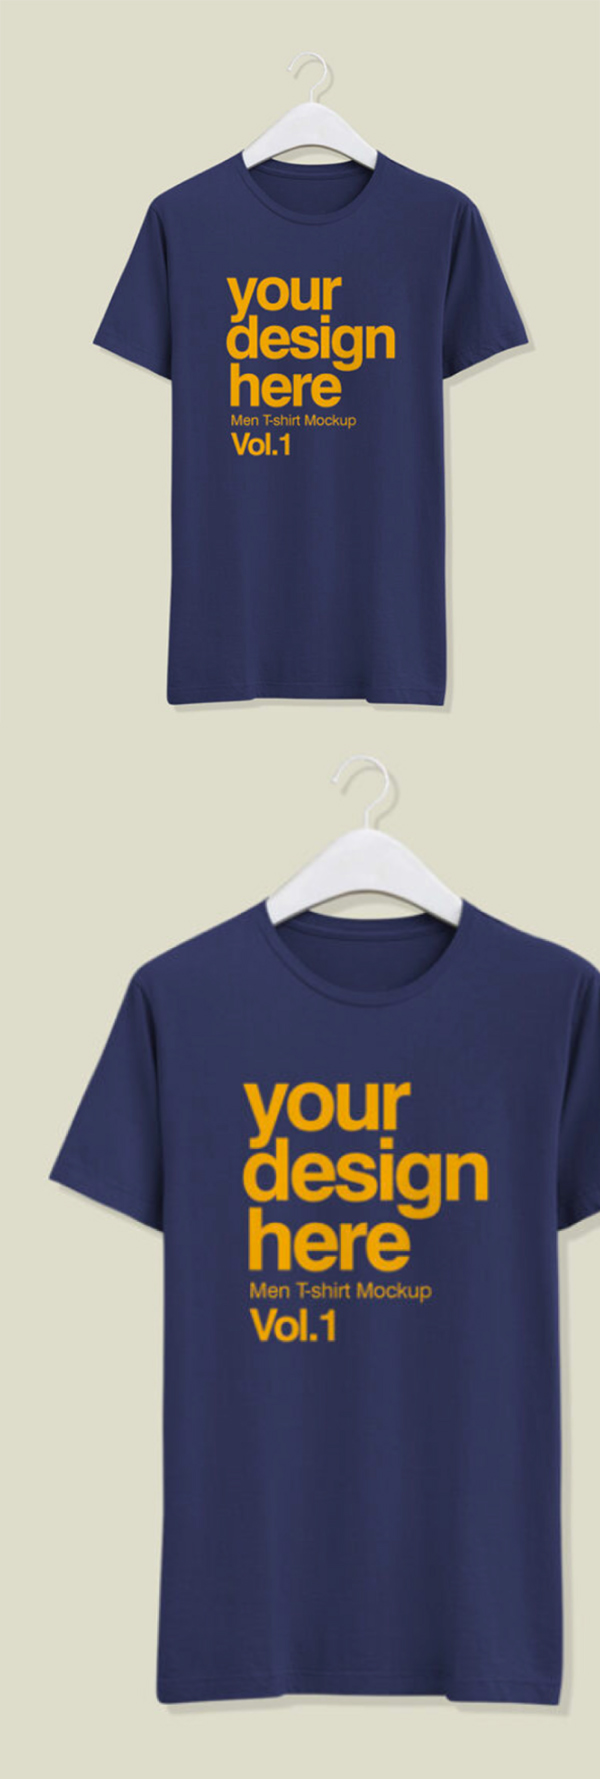 Free T-Shirt for Men on a white Hanger Mockup